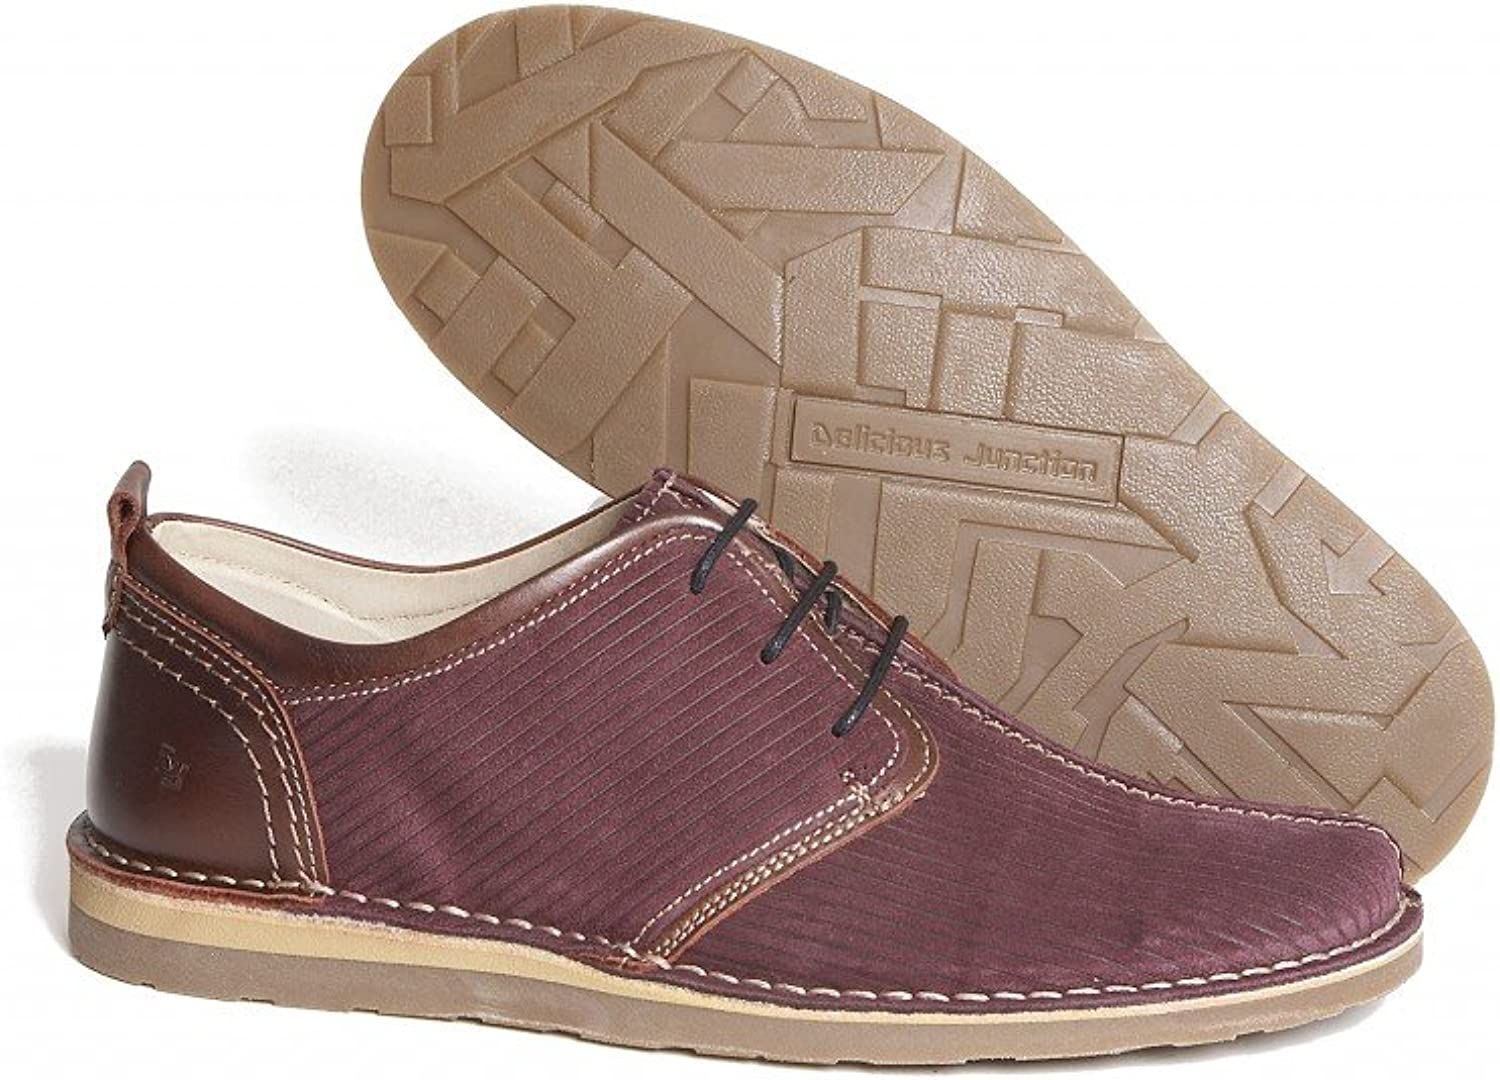 Delicious Junction Afterglow Corded Suede Lace Up shoes Burgundy